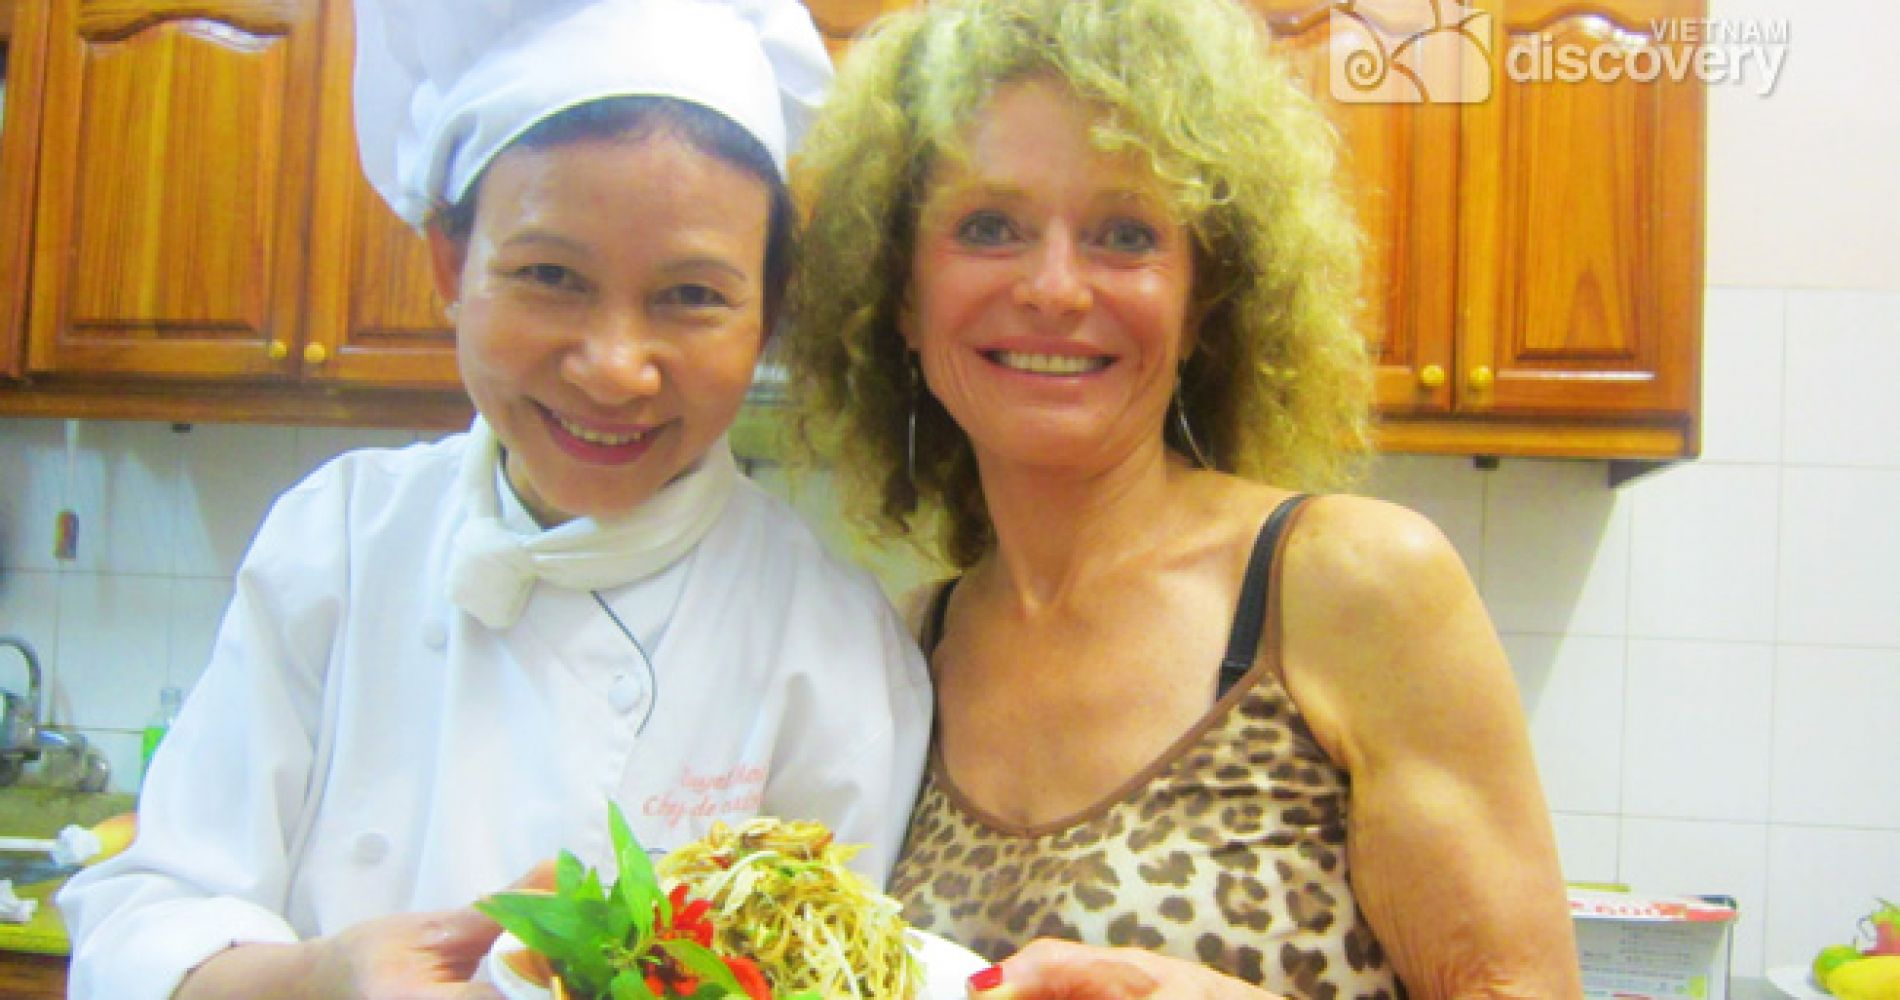 Hanoi Half-day Cooking Experience with the Master Chef Tinggly Gifts